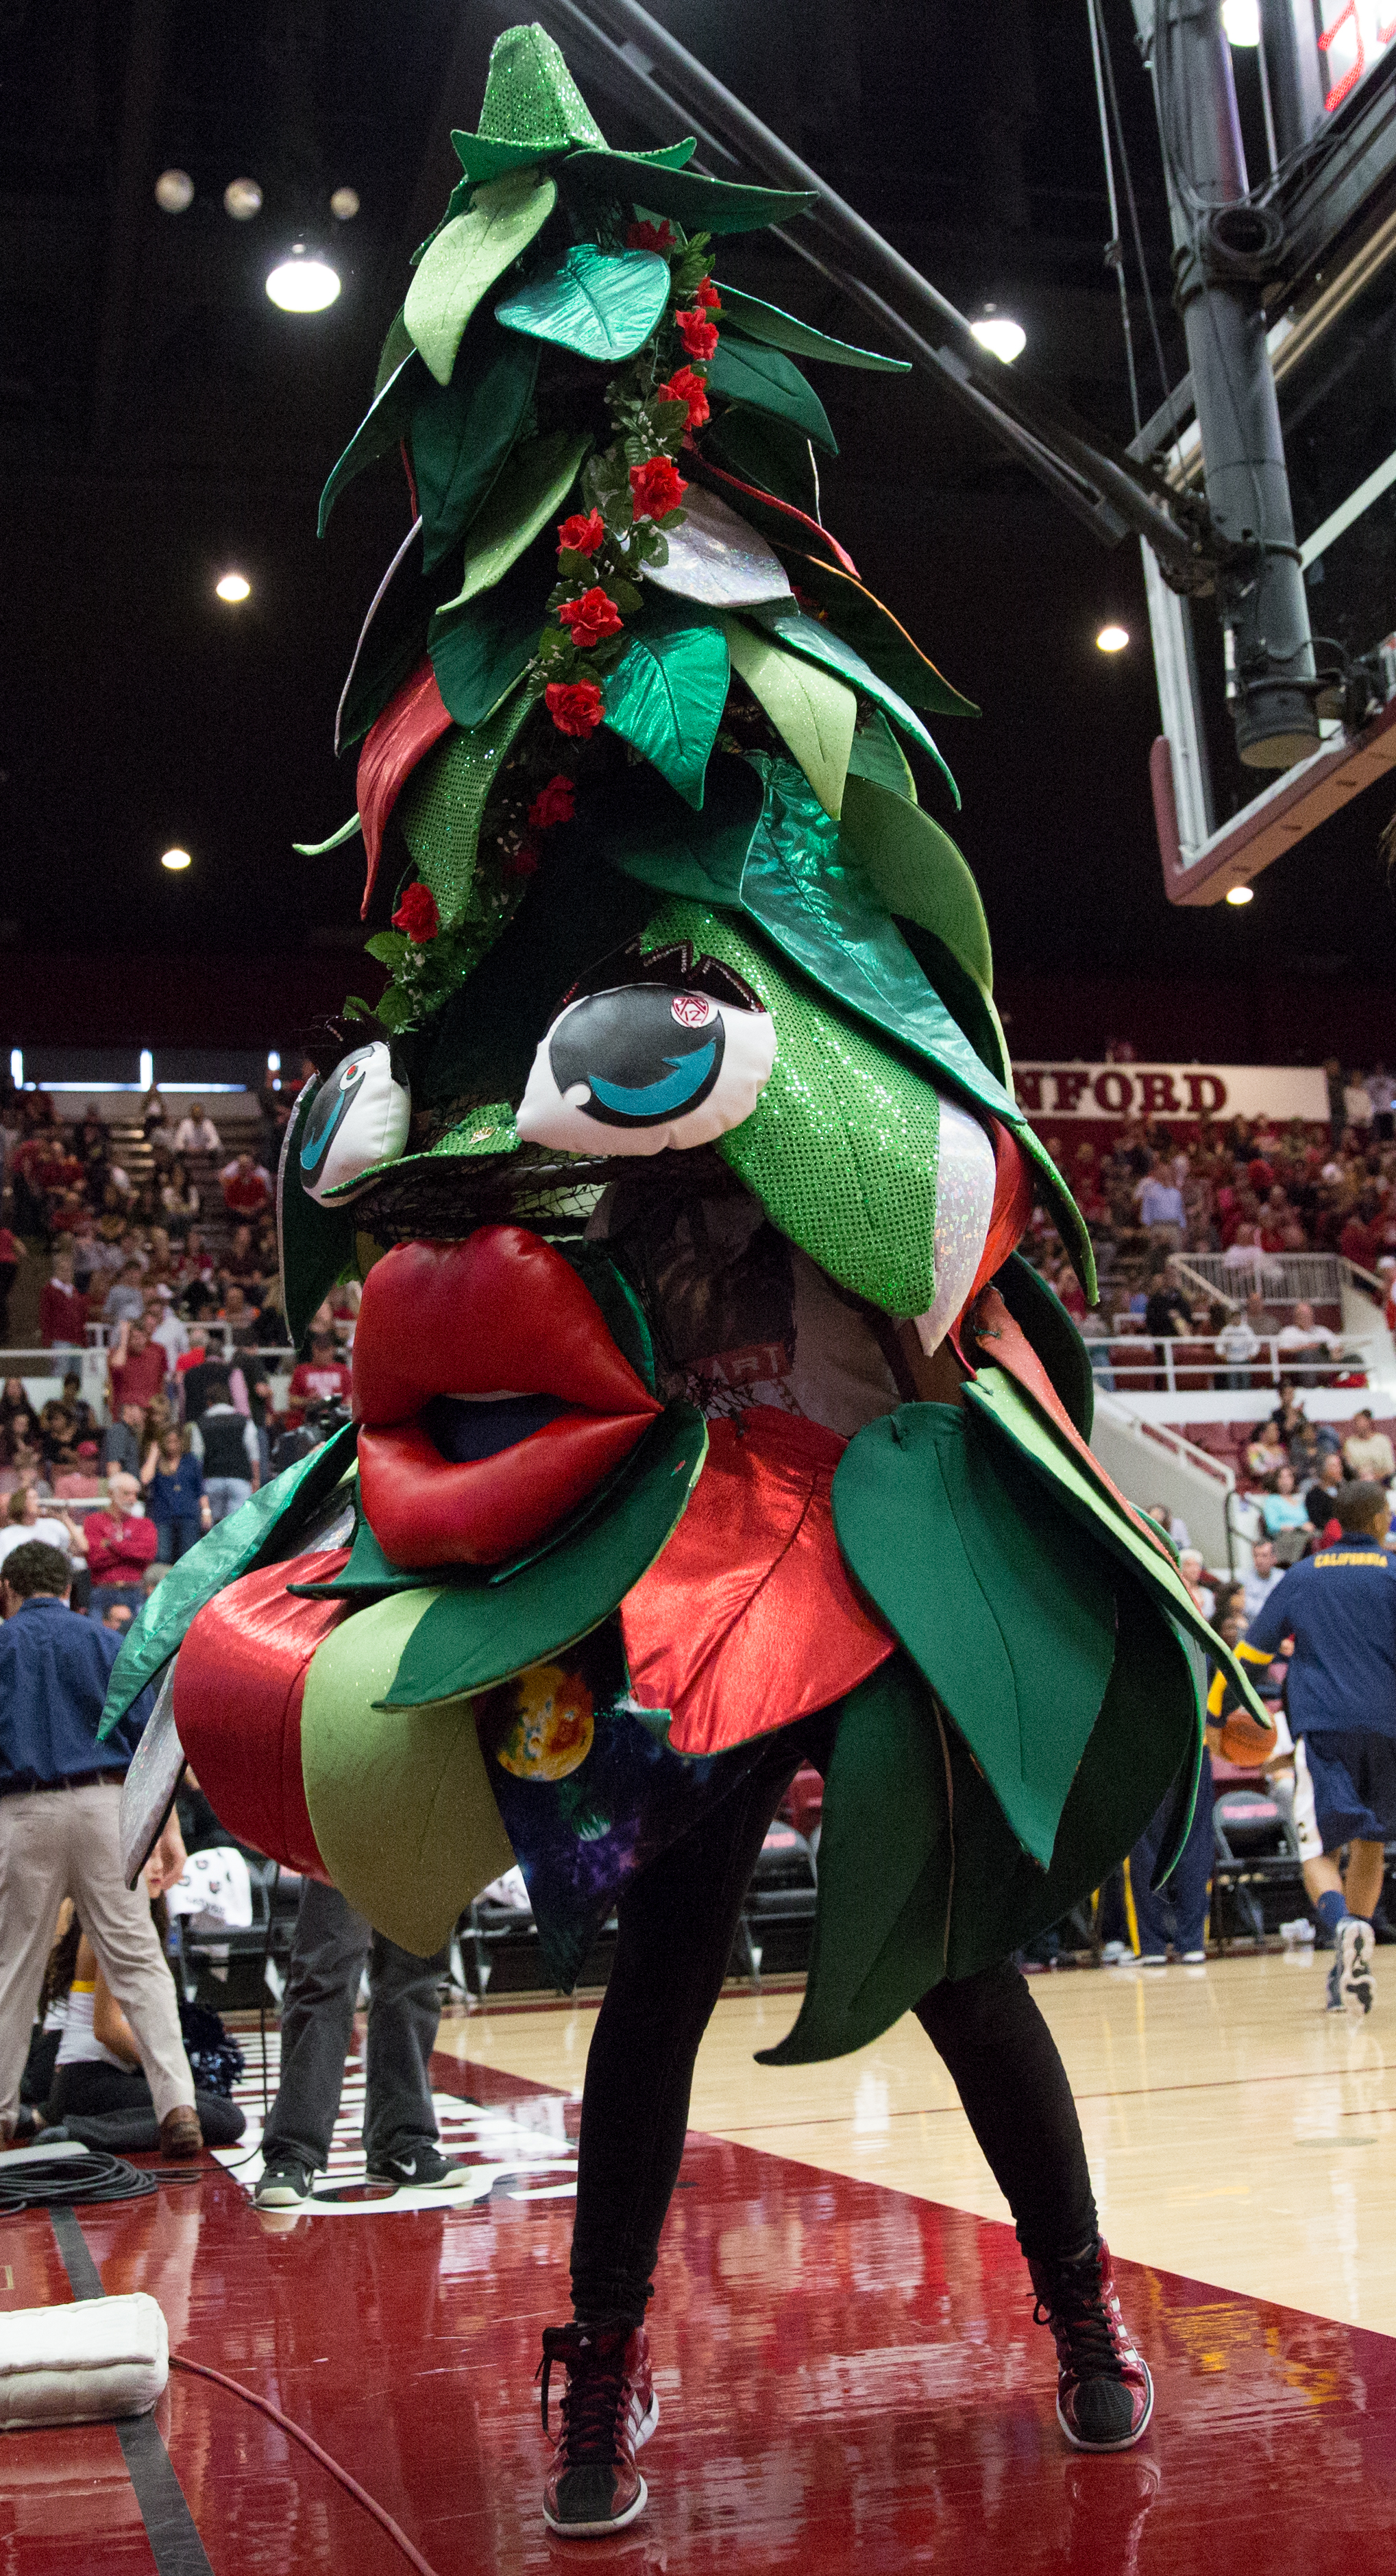 """The origins of Stanford's """"Tree"""" mascot 